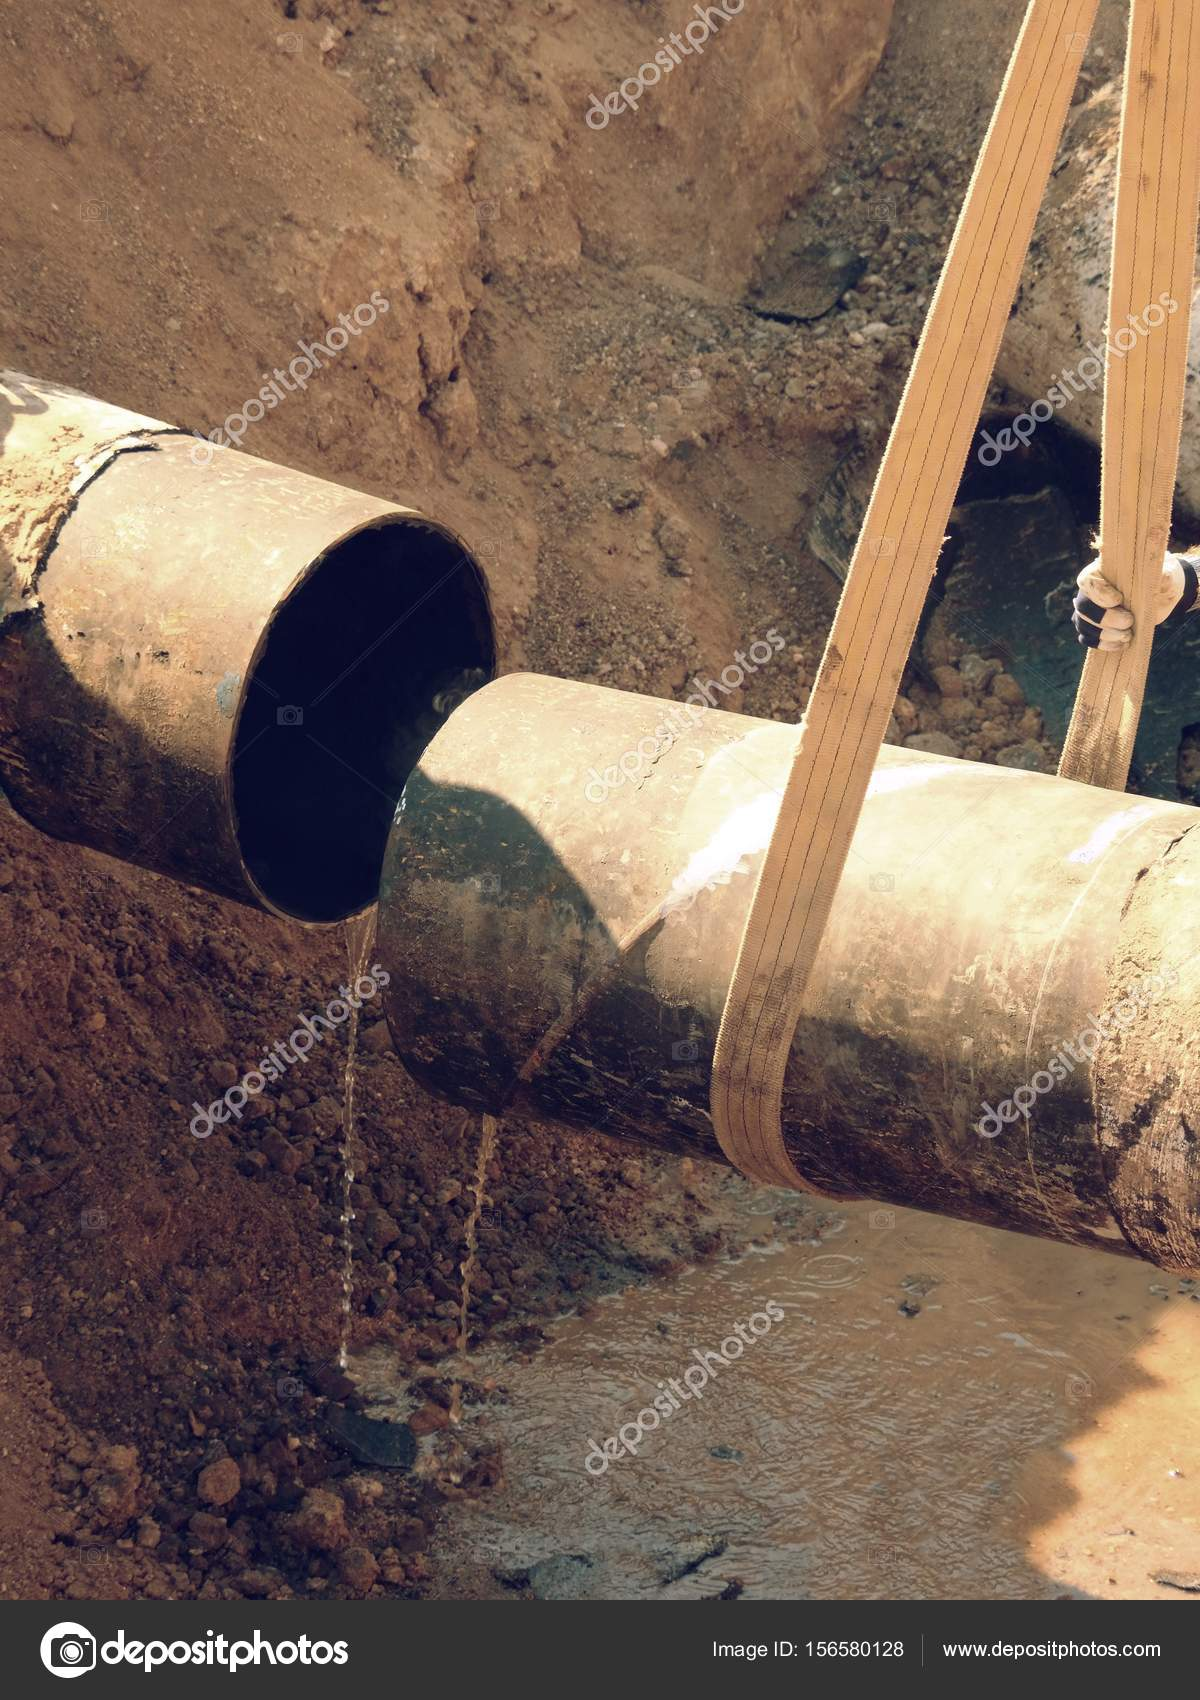 Rusty Old Iron Pipe With Clear Water Flowing From It. Waste water drain pipe u2014 & Rusty Old Iron Pipe With Clear Water Flowing From It. Waste water ...